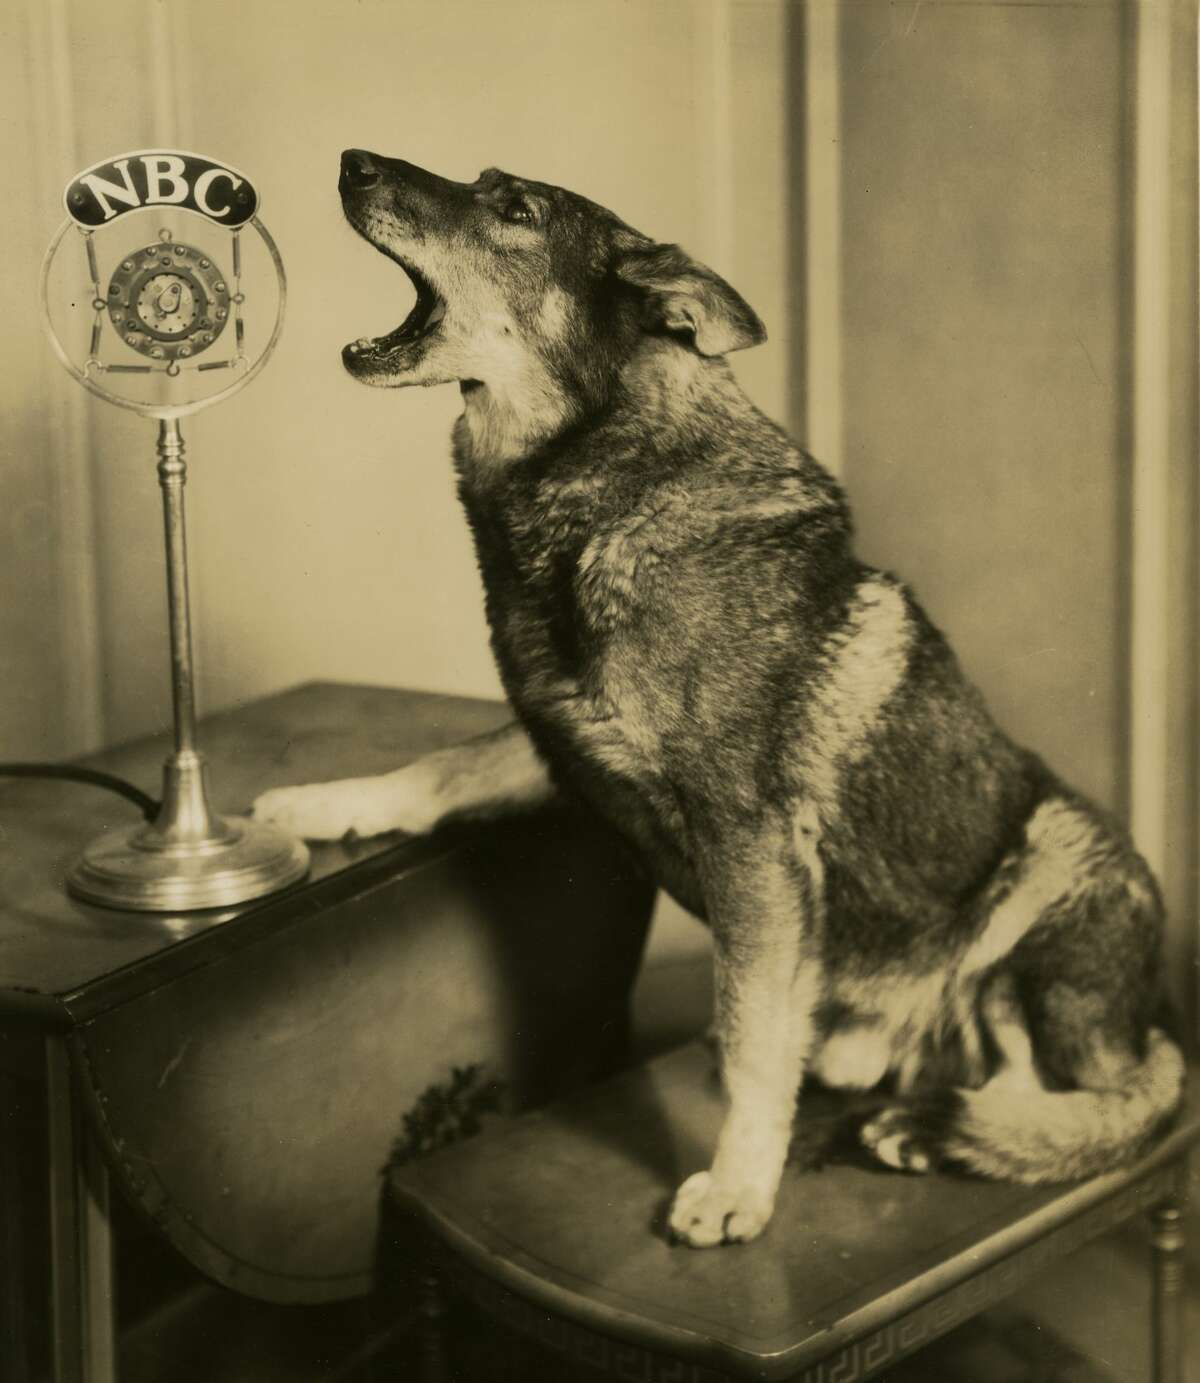 The animal actor Rin Tin Tin was born in 1918. Here, he barks into a microphone during a broadcast of NBC's 'Rin Tin Tin Thriller' in Chicago, Illinois, in 1927.